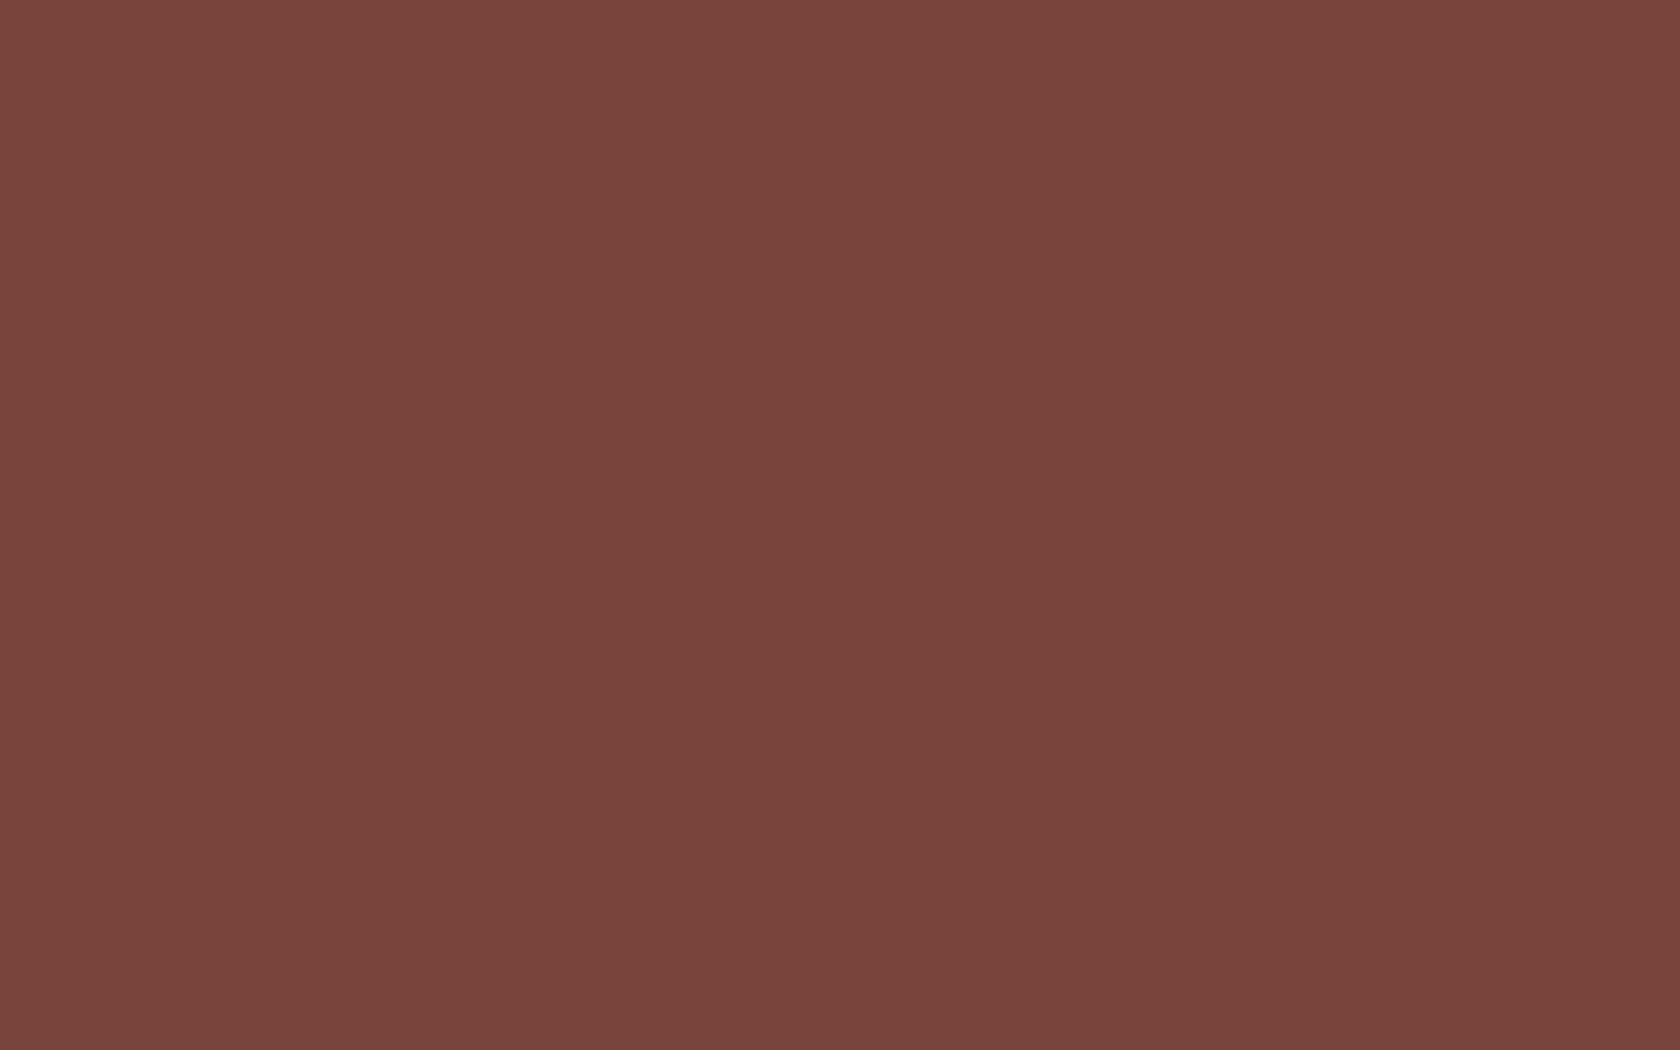 1680x1050 Medium Tuscan Red Solid Color Background